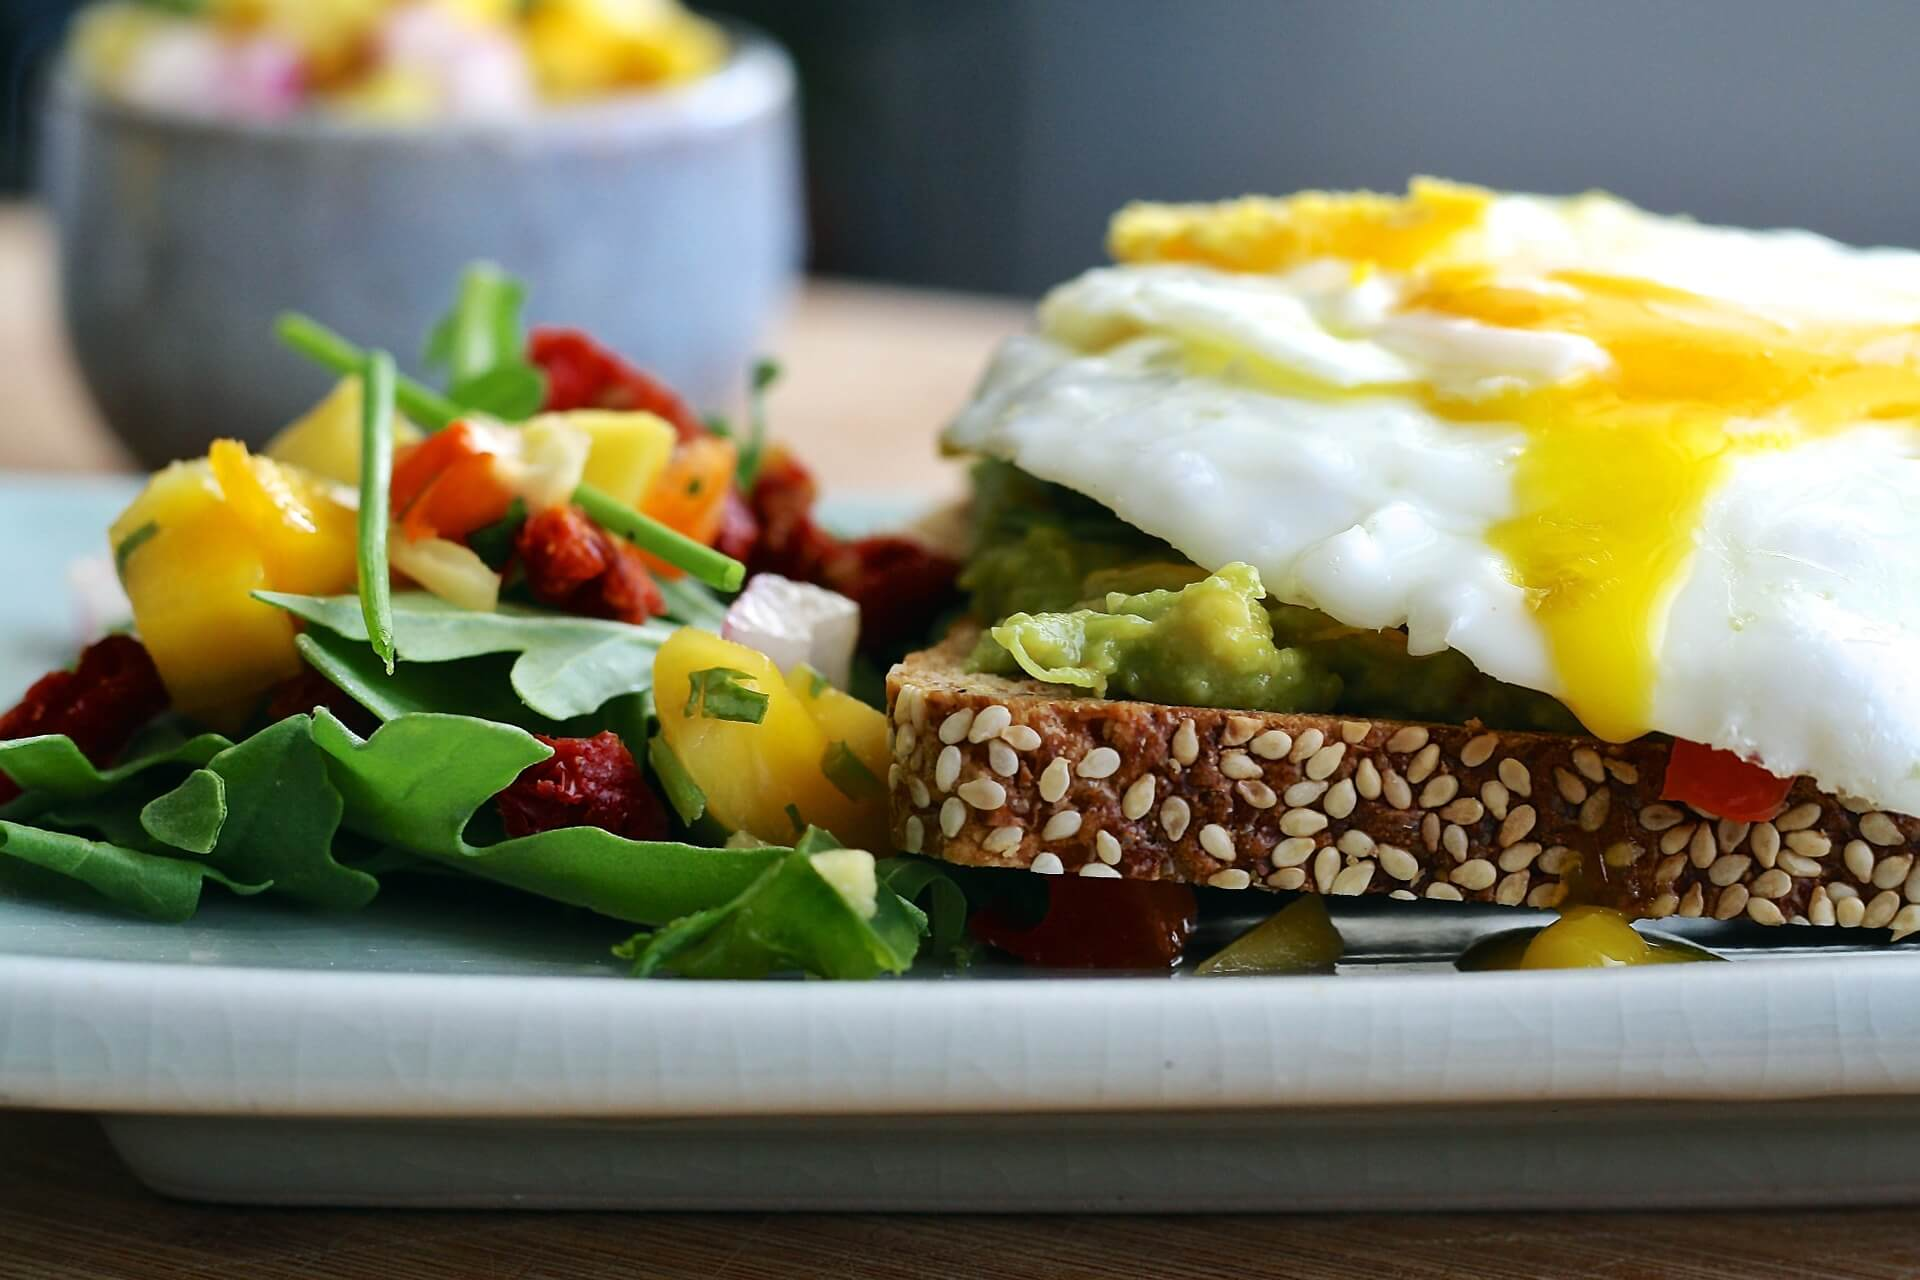 a plate of eggs, greens, and toast